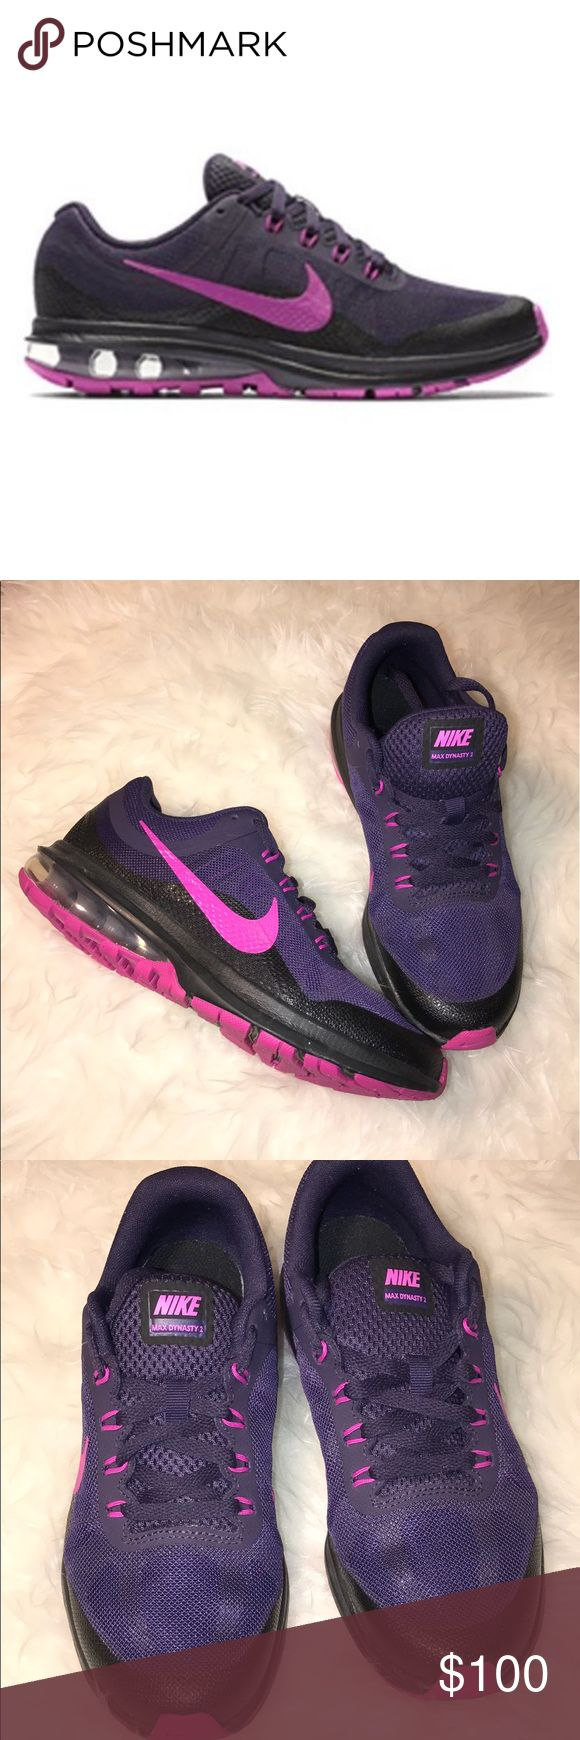 NIKE (sz4.5Y) AIR MAX DYNASTY II G YOUTH ** NIKE AIR MAX DYNASTY II G** 💗NO TRADES💗 -brand new without tags -size 4.5 YOUTH- but will fit a women's 6.5 as well -colors: purple, black, and pink -purple shoelaces come with the shoes -made with breathable material -these are great for running and walking -springs bottom to help with stability and a good work out -The width is medium but it can be adjusted to fit perfectly to the foot -super comfortable shoe -cans from a pet free/smoke free…